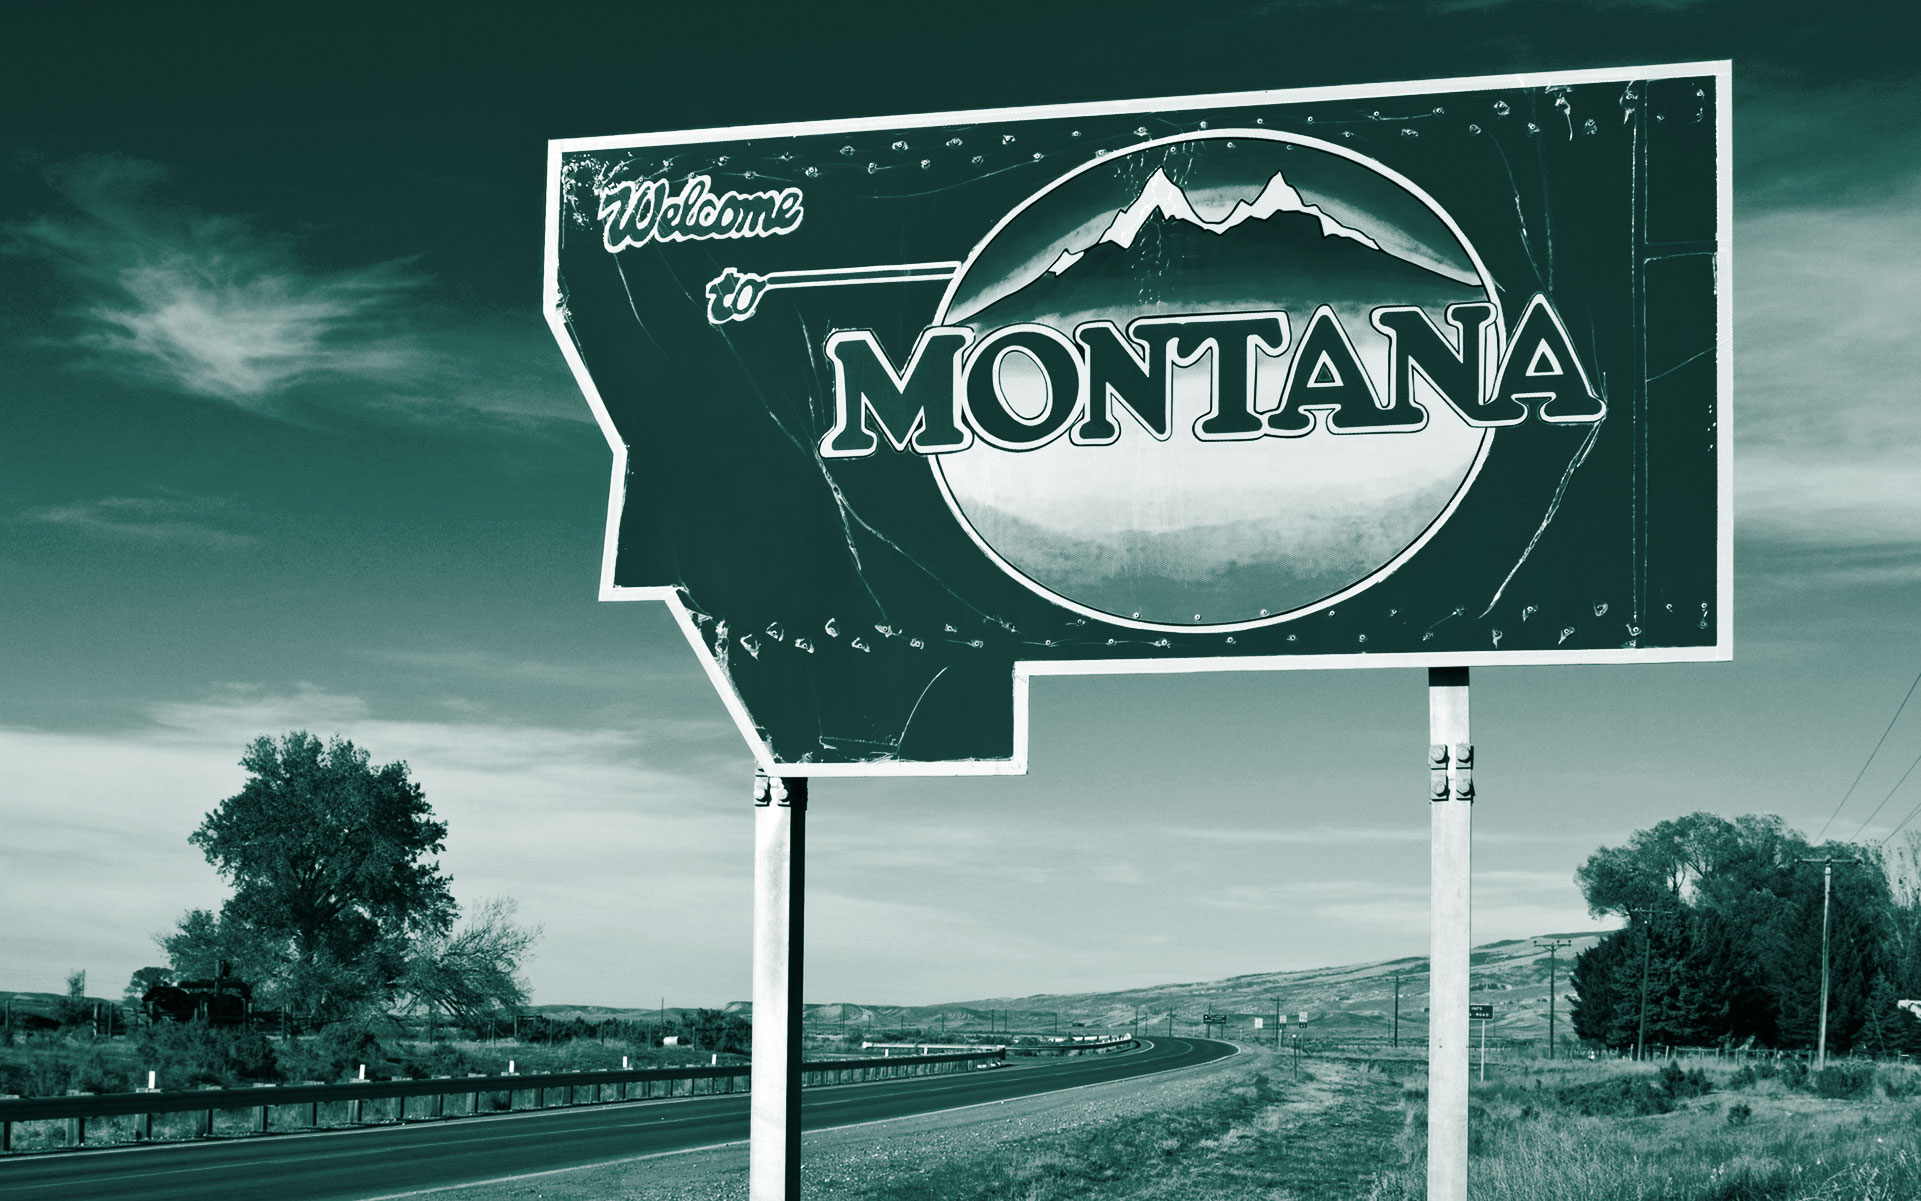 New Approach Montana aims to put two legalization measures on 2020 ballot